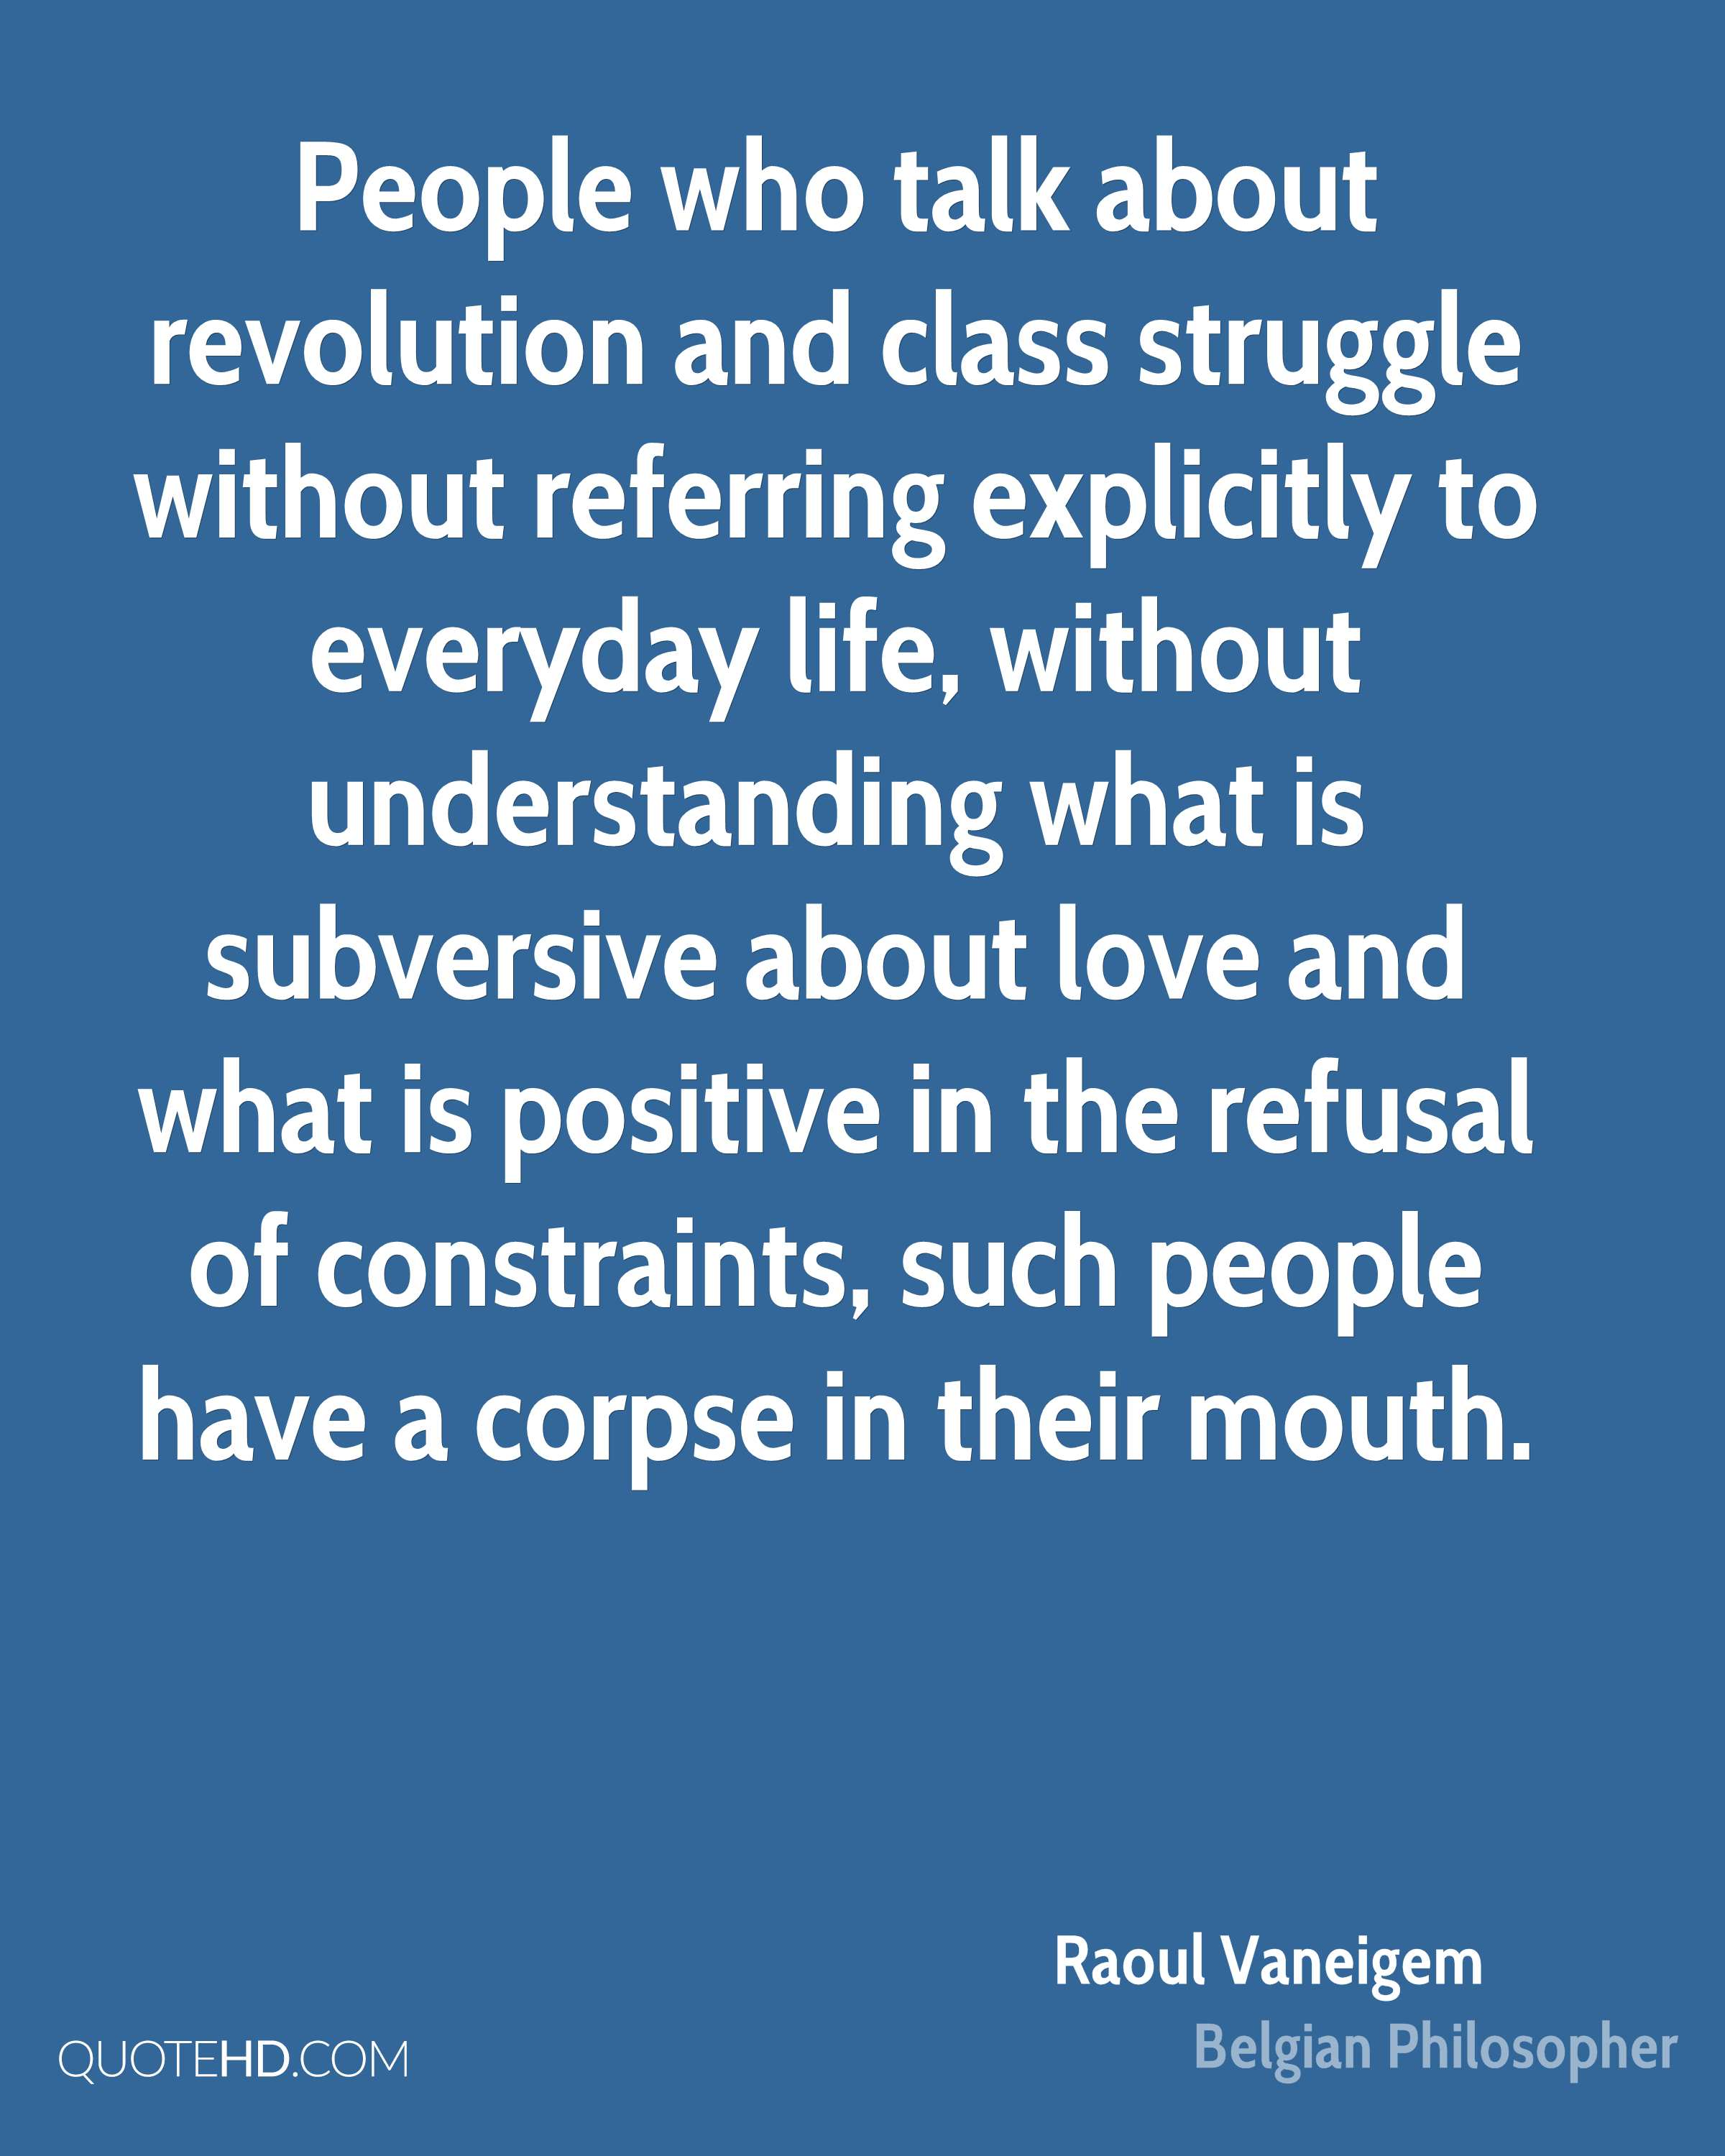 People who talk about revolution and class struggle without referring explicitly to everyday life, without understanding what is subversive about love and what is positive in the refusal of constraints, such people have a corpse in their mouth.